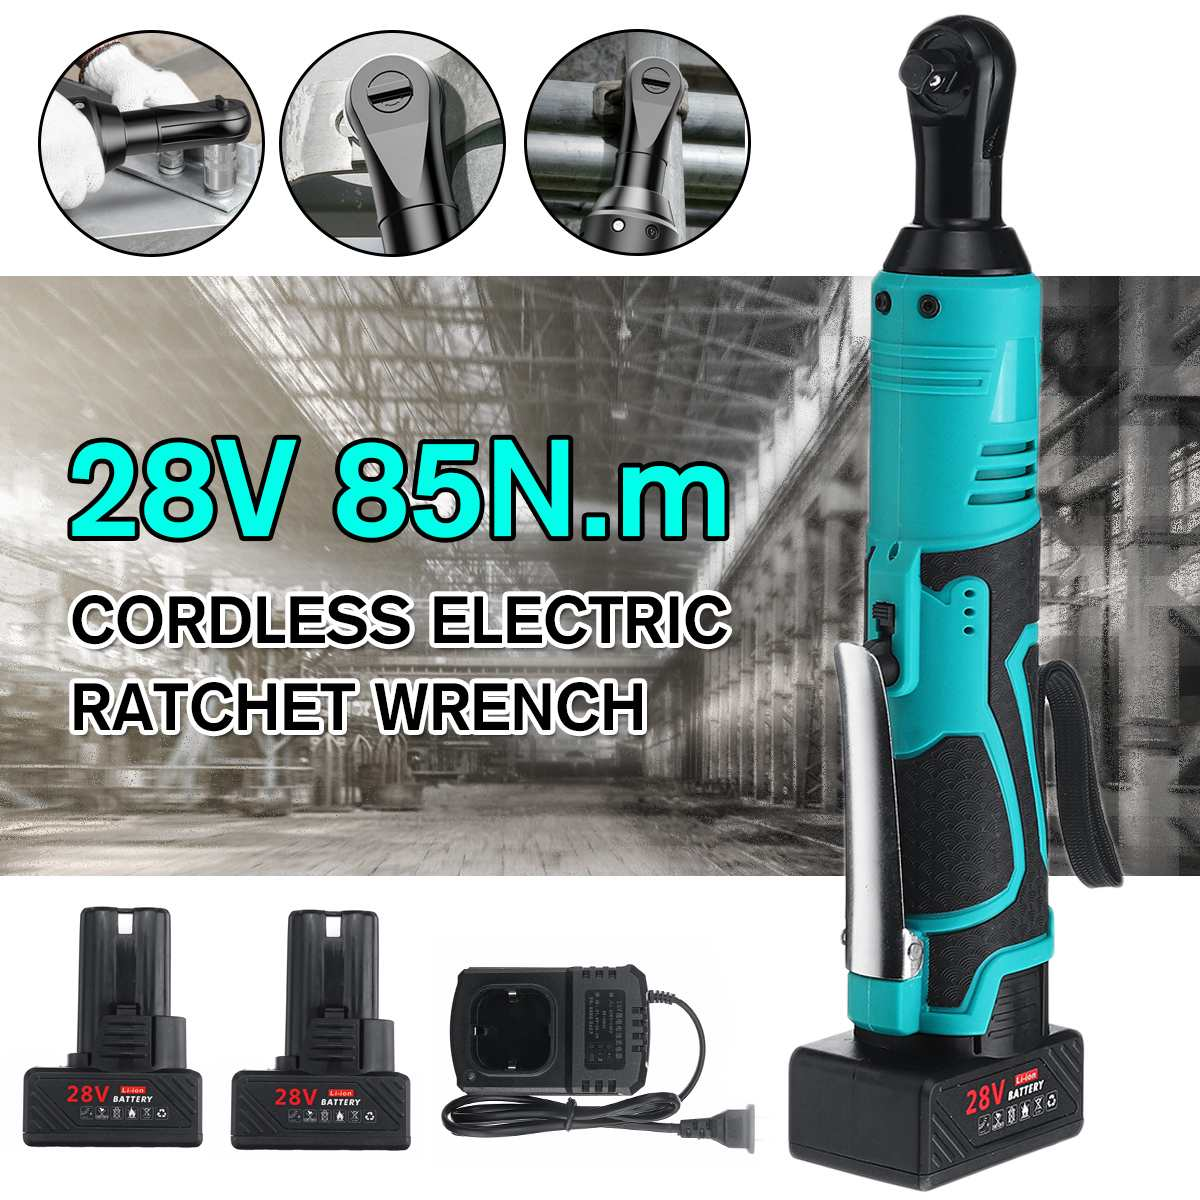 28V Electric Wrench 3/8 Inch Cordless Ratchet Right Angle Wrench With 1/2 Batteries Kit Rechargeable Scaffolding 85N.m Max